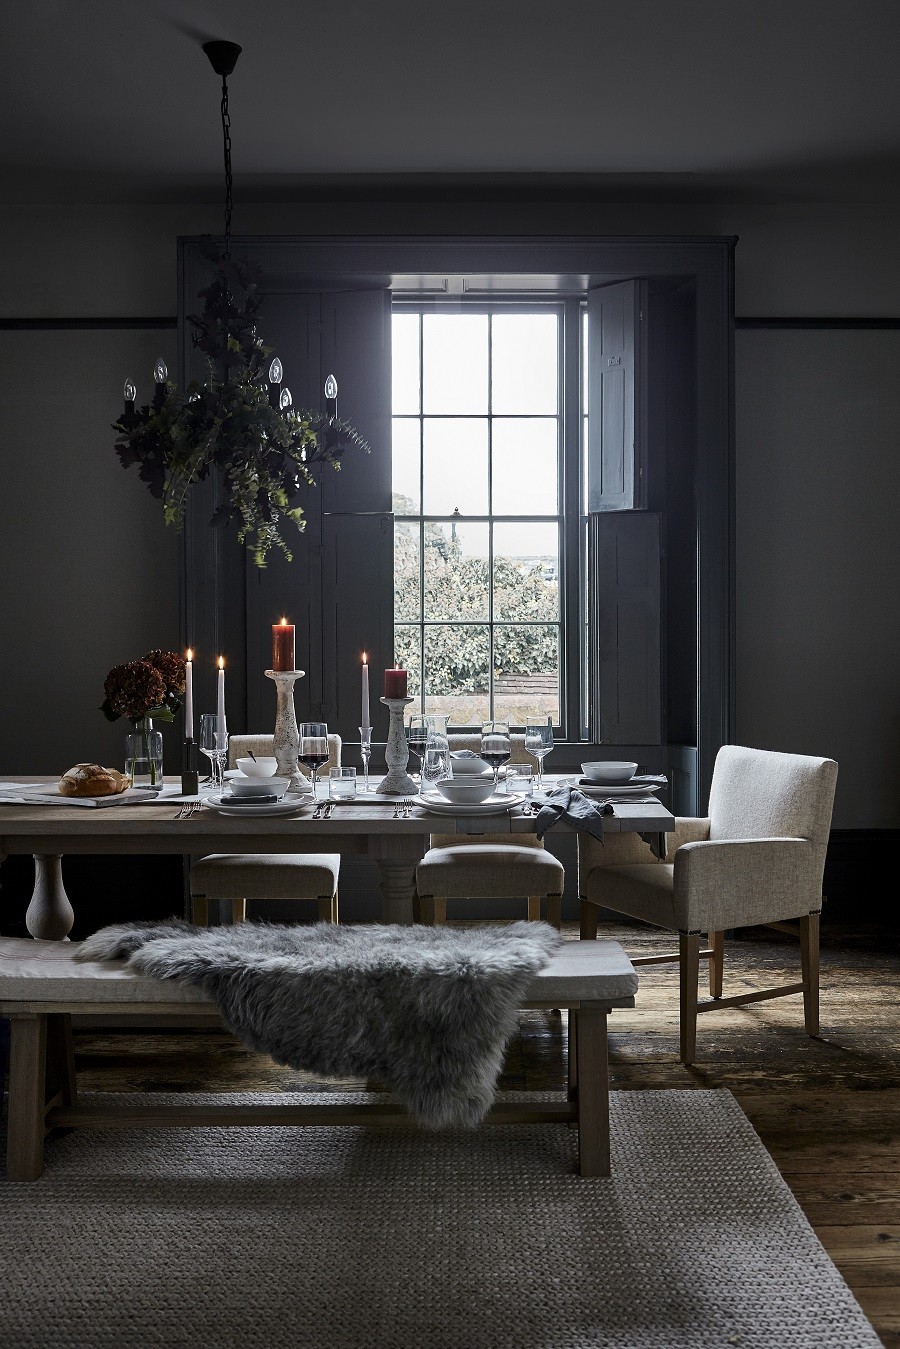 A Cosy Winter Dining Room - Get The Look